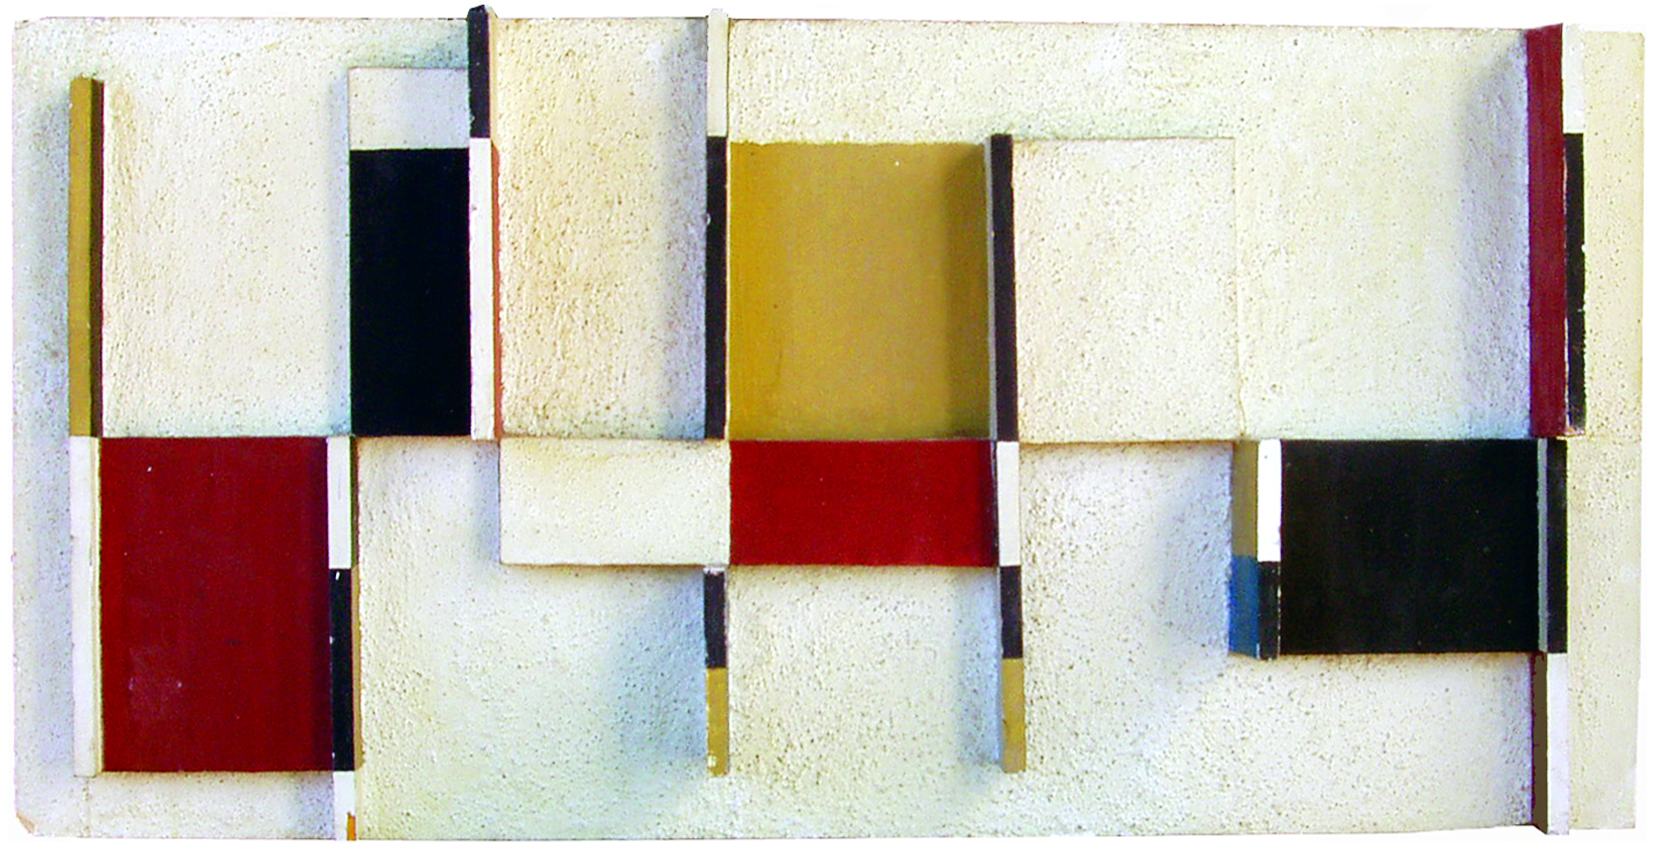 UNTITLED COMPOSITION  16(h) x 34(w) x 3(d) in